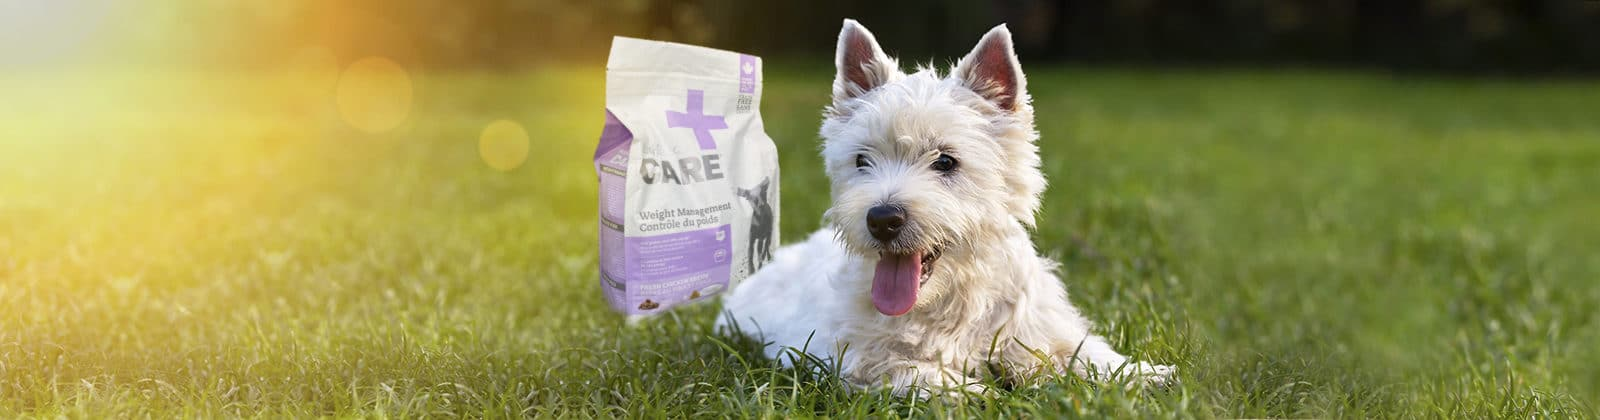 Nutrience Care Weight Management dog